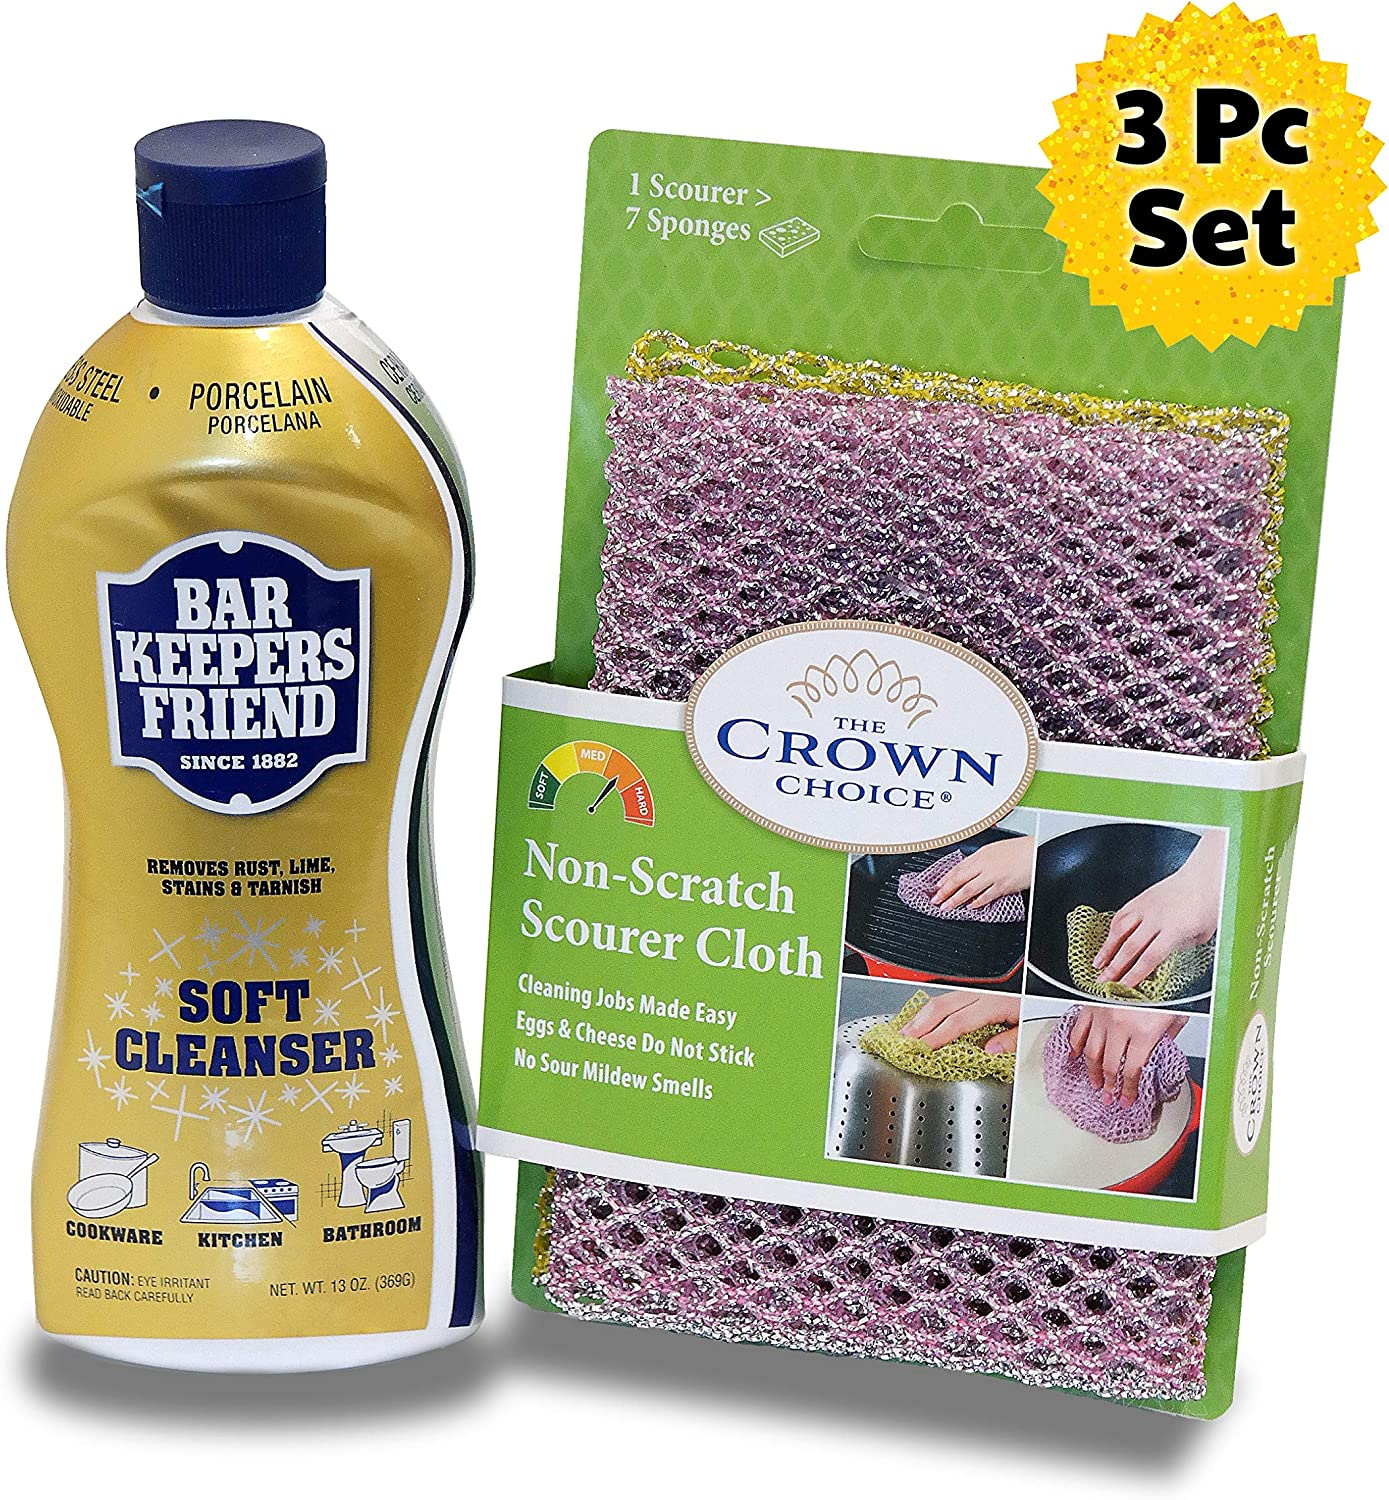 BAR KEEPERS FRIEND Soft Cleanser Liquid (13 OZ) and Non Scratch Scouring Scrubber Kit | Multipurpose, Stainless Steel, Rust, Soft Cleaner with Heavy Duty Non Scratch DishCloth